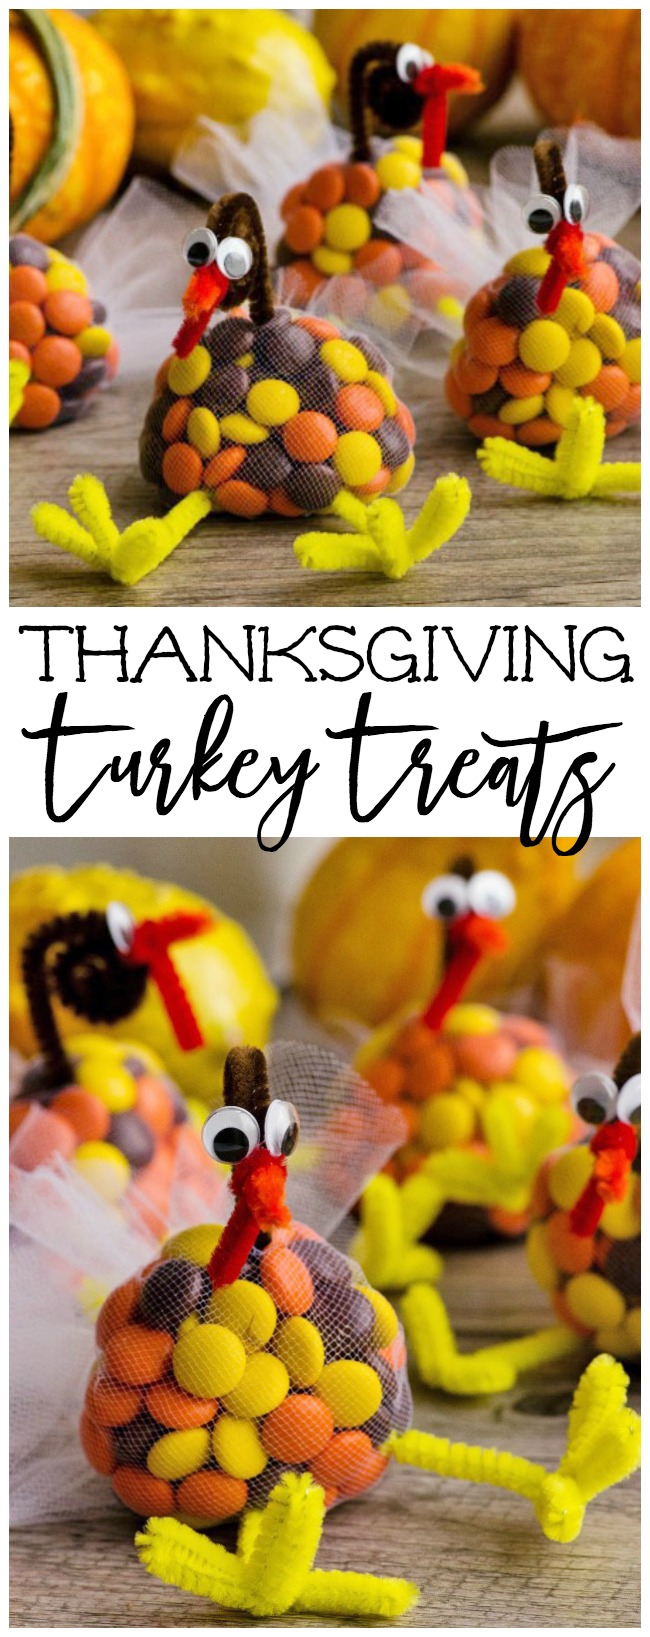 The cutest little Thanksgiving turkey treats! Decorate your Thanksgiving table, use as favours, or add them to your Thanksgiving kids' table!